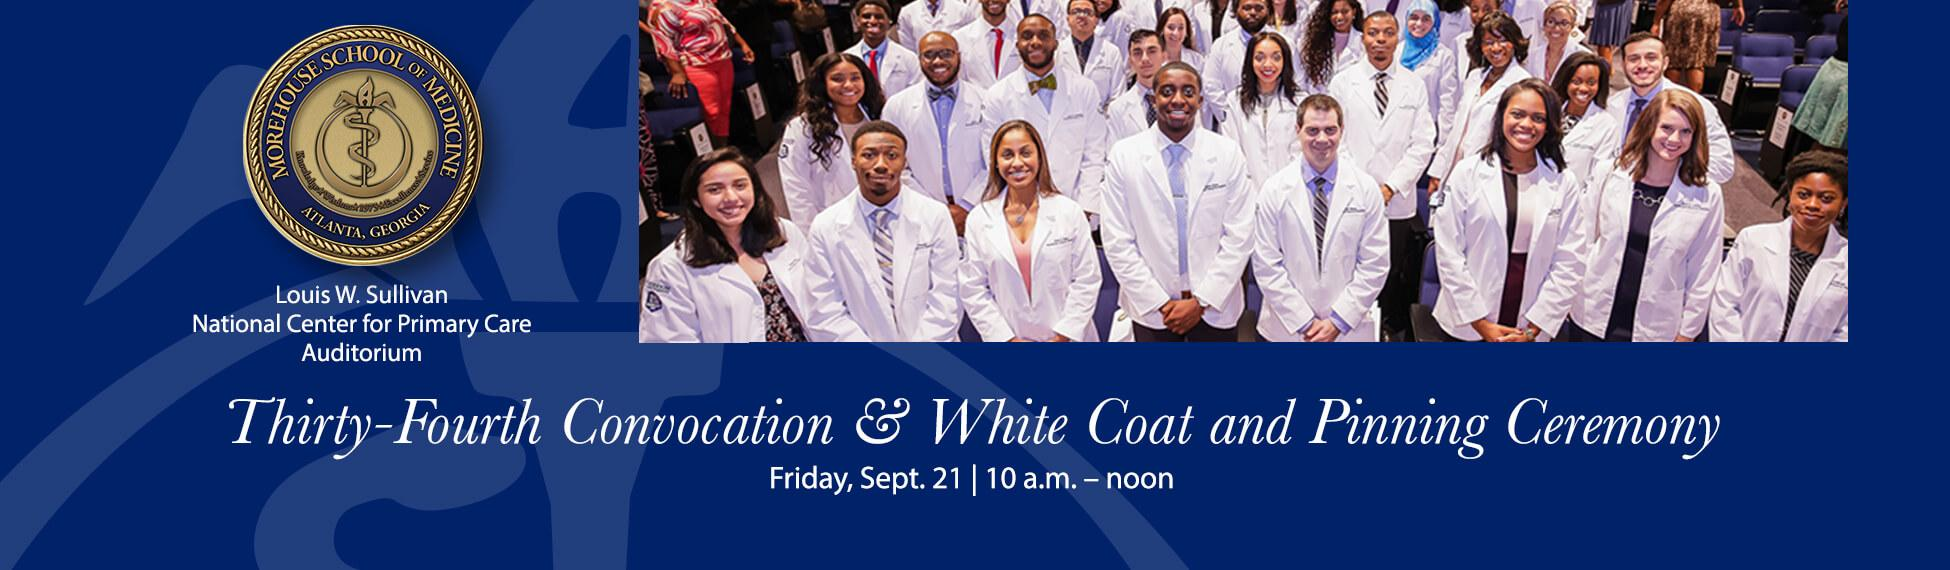 34th Convocation and White Coat and Pinning Ceremony, Sept. 21